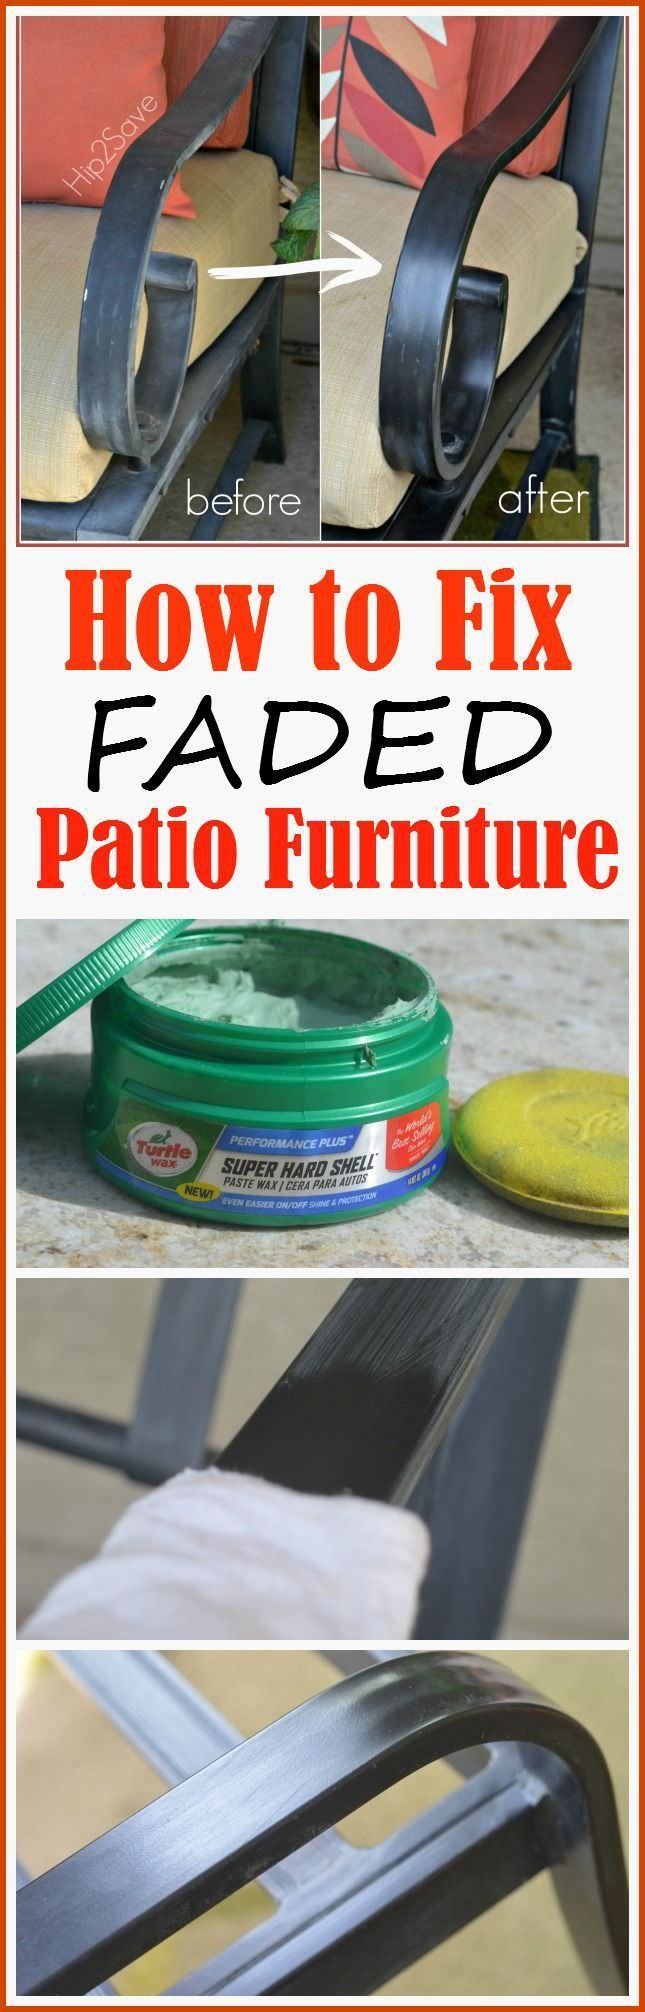 Want to learn how you can make your existing outdoor furniture looking new and shiny again? Read this article.